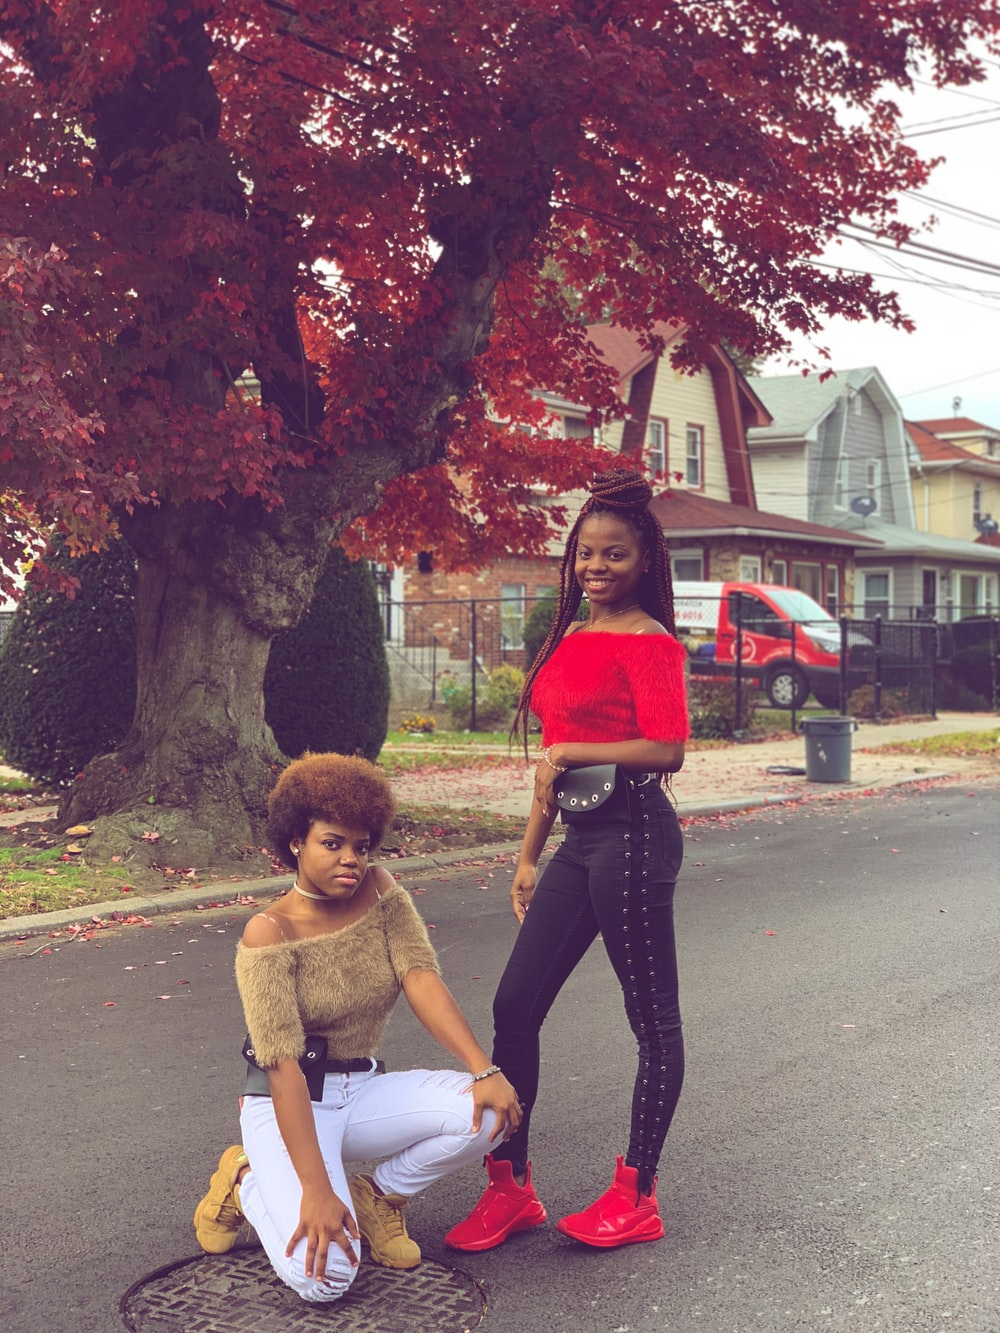 two women posing on road under tree during daytime